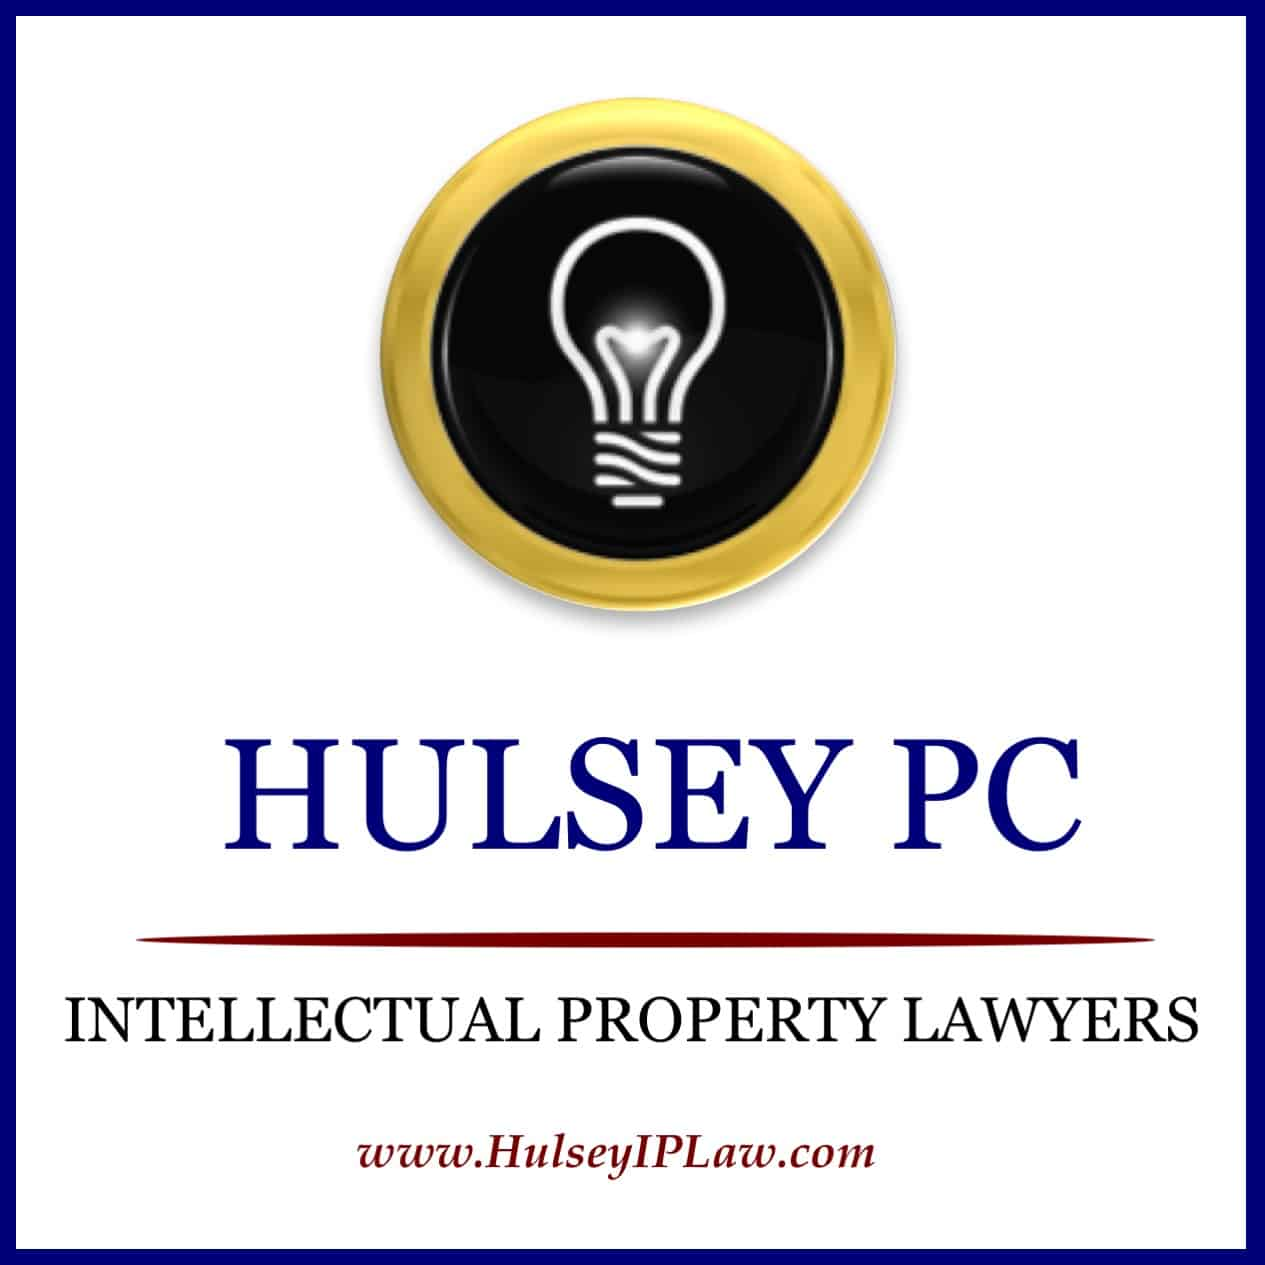 BILL HULSEY LAWYER - PATENT - IP - HULSEY PC